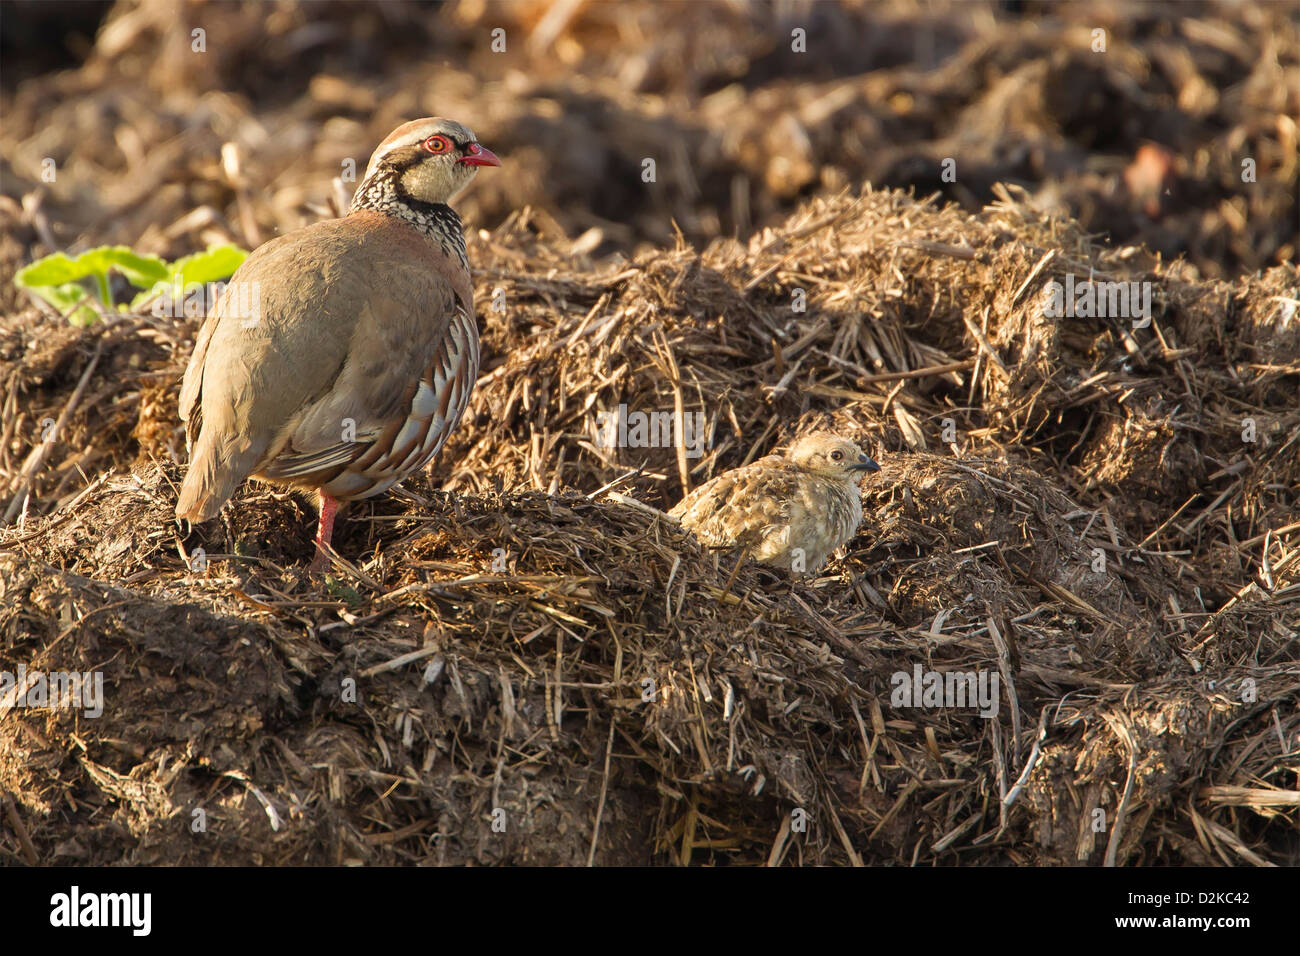 Female red legged Partridge with its chick on a dung heap - Stock Image